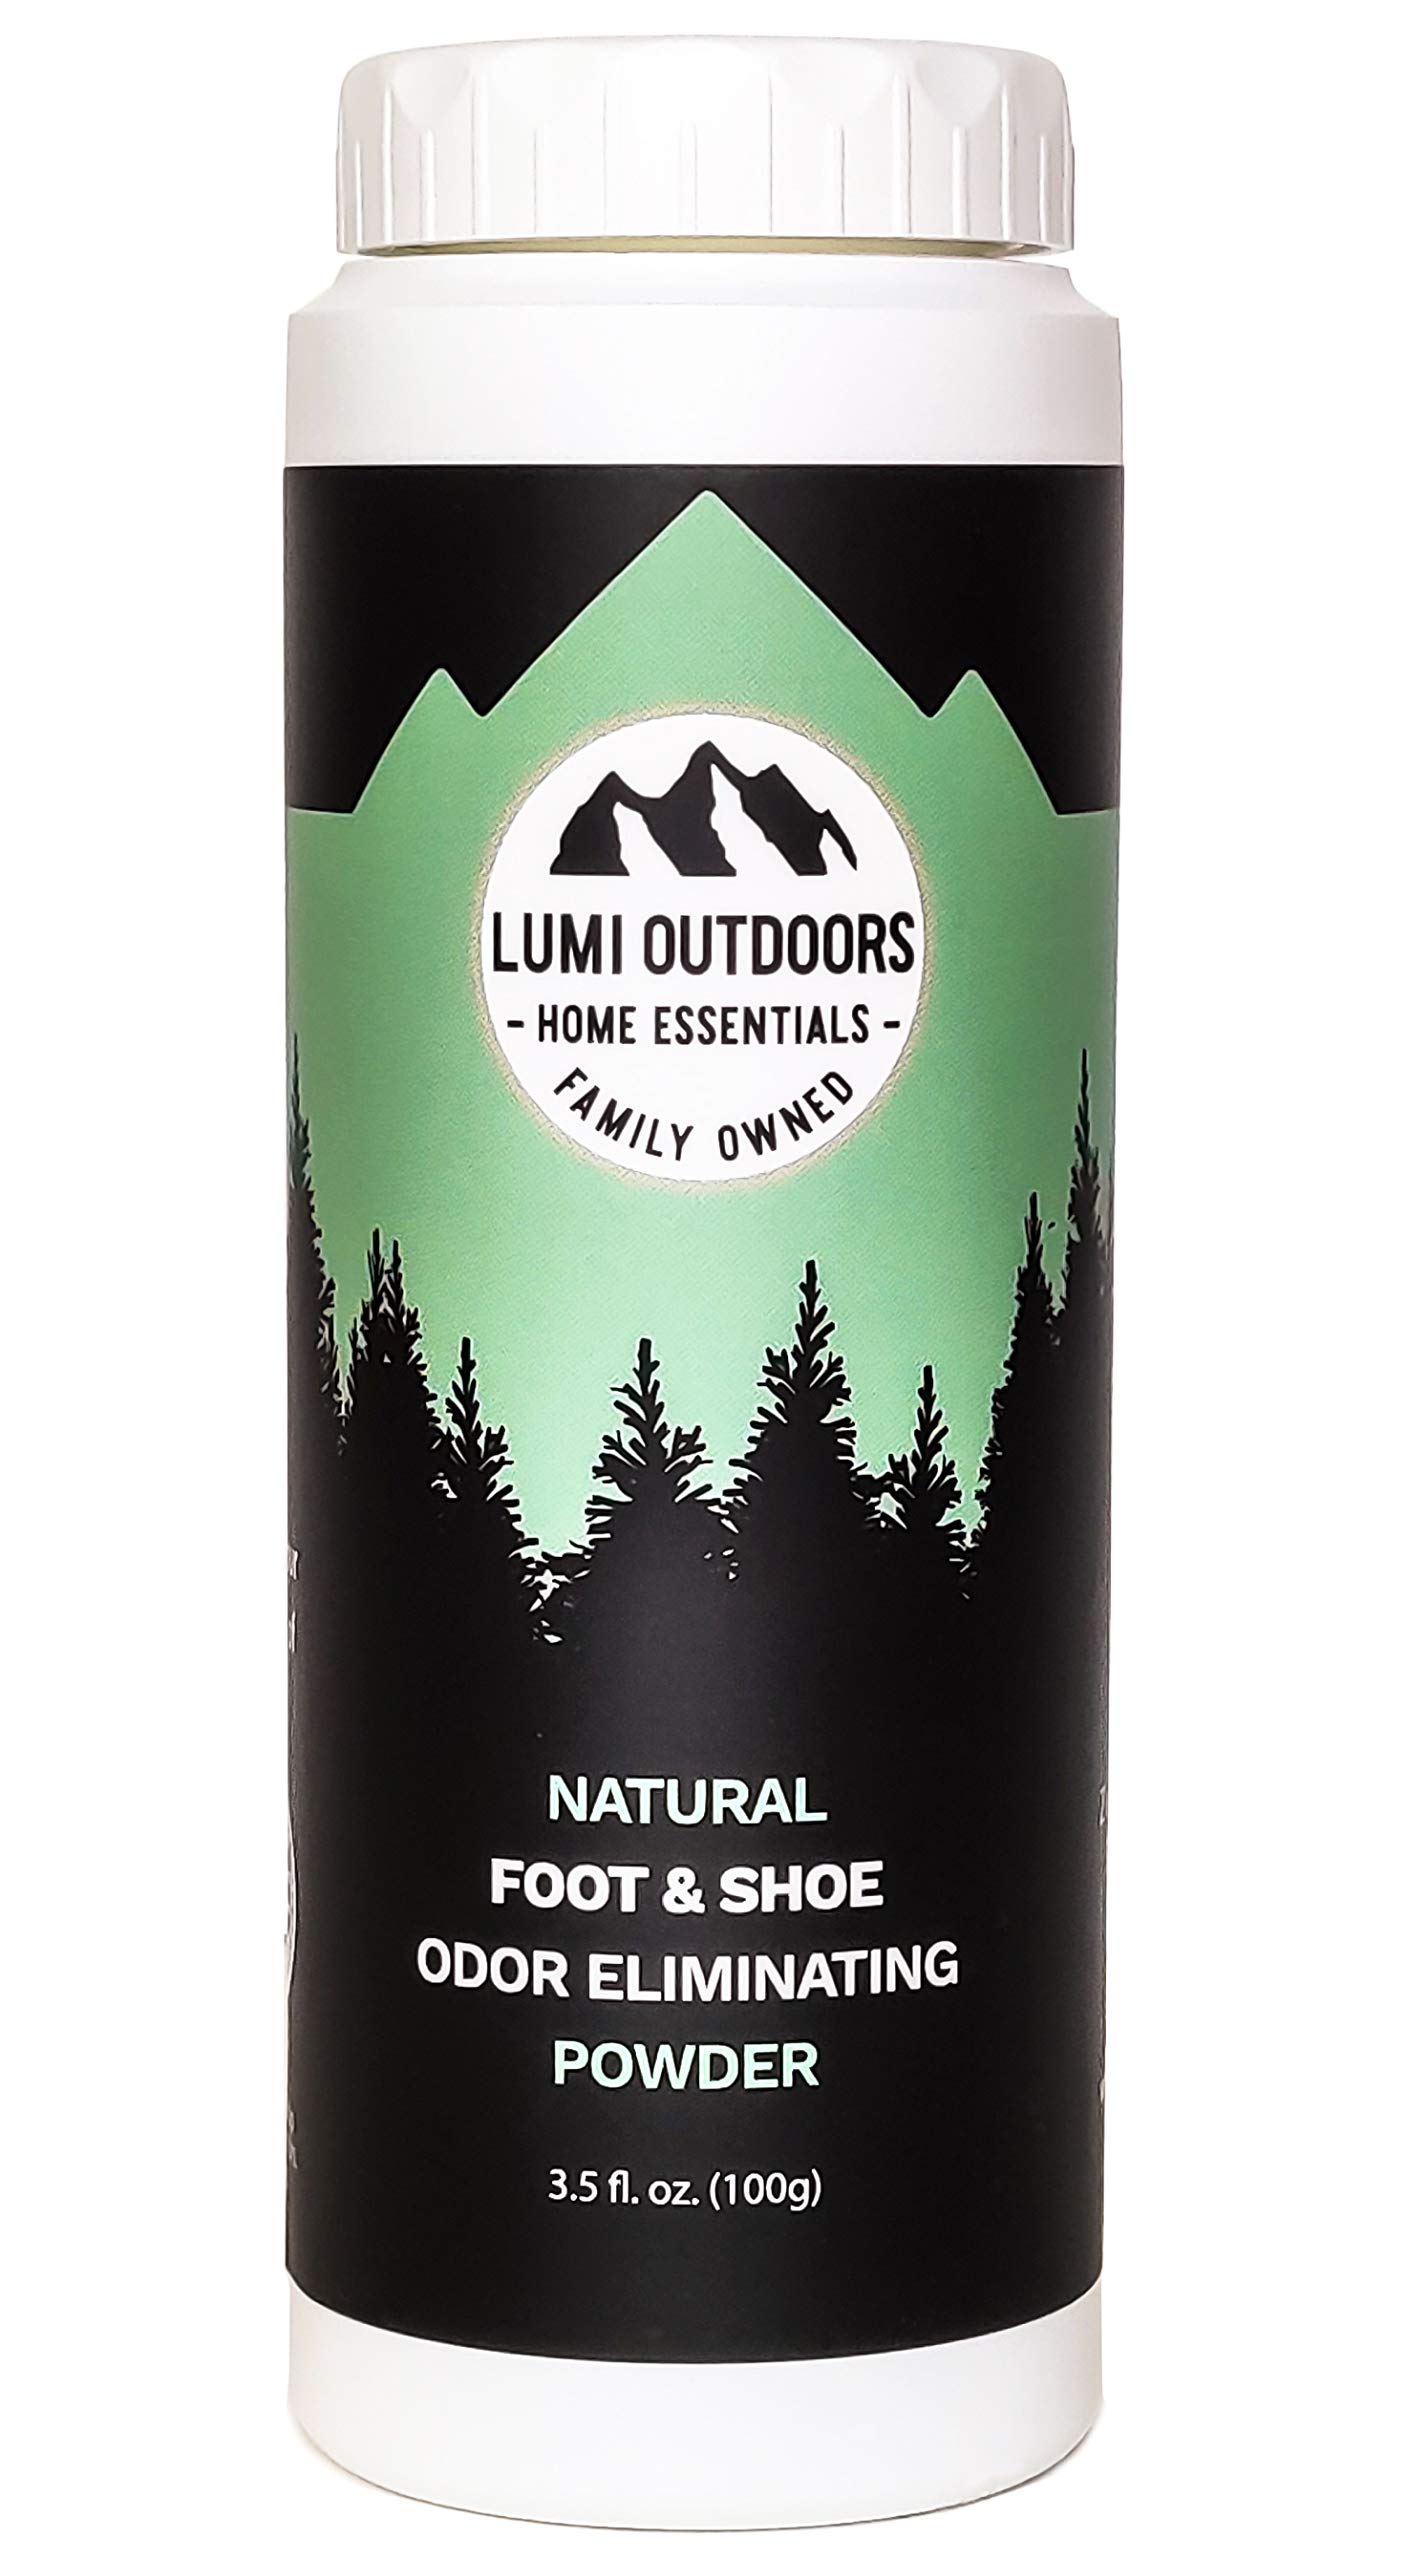 Natural Powder Shoe and Foot Odor Eliminator and Deodorizer - Talc Free Foot Powder - Fresh Lemongrass Scent by Lumi Outdoors